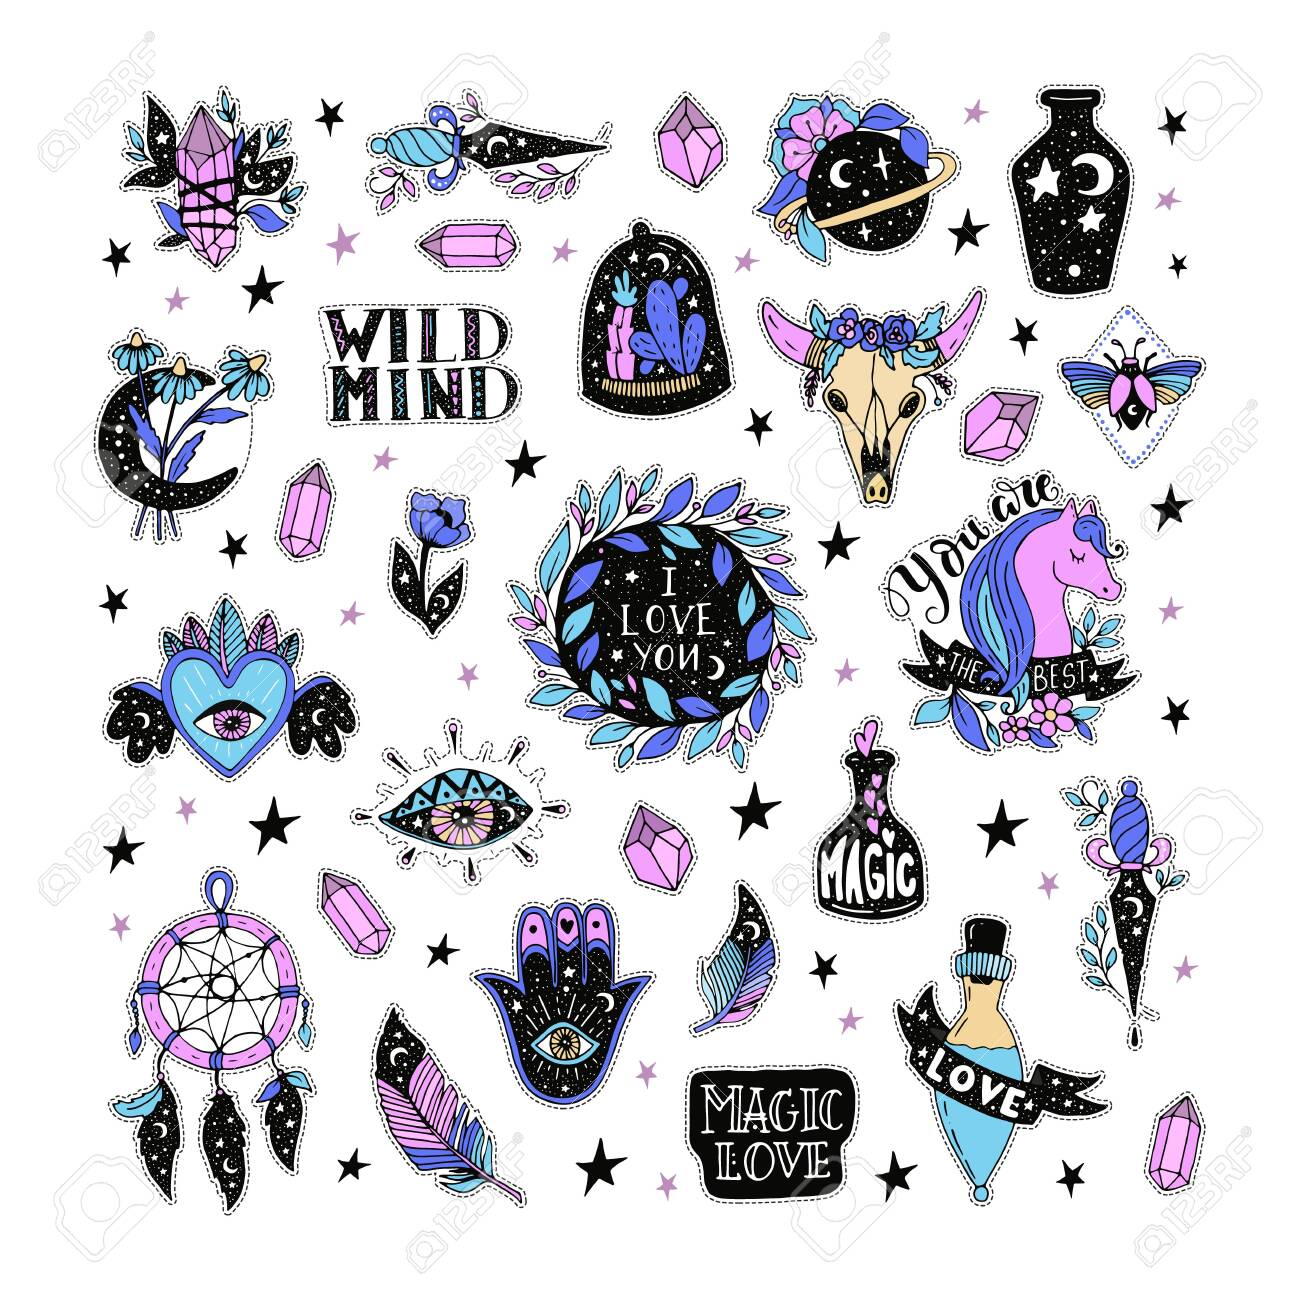 Vector patch set magic love and witchcraft. 80s-90s wild magic style design. Isolated illustrations - great for stickers, embroidery, badges. - 123500411